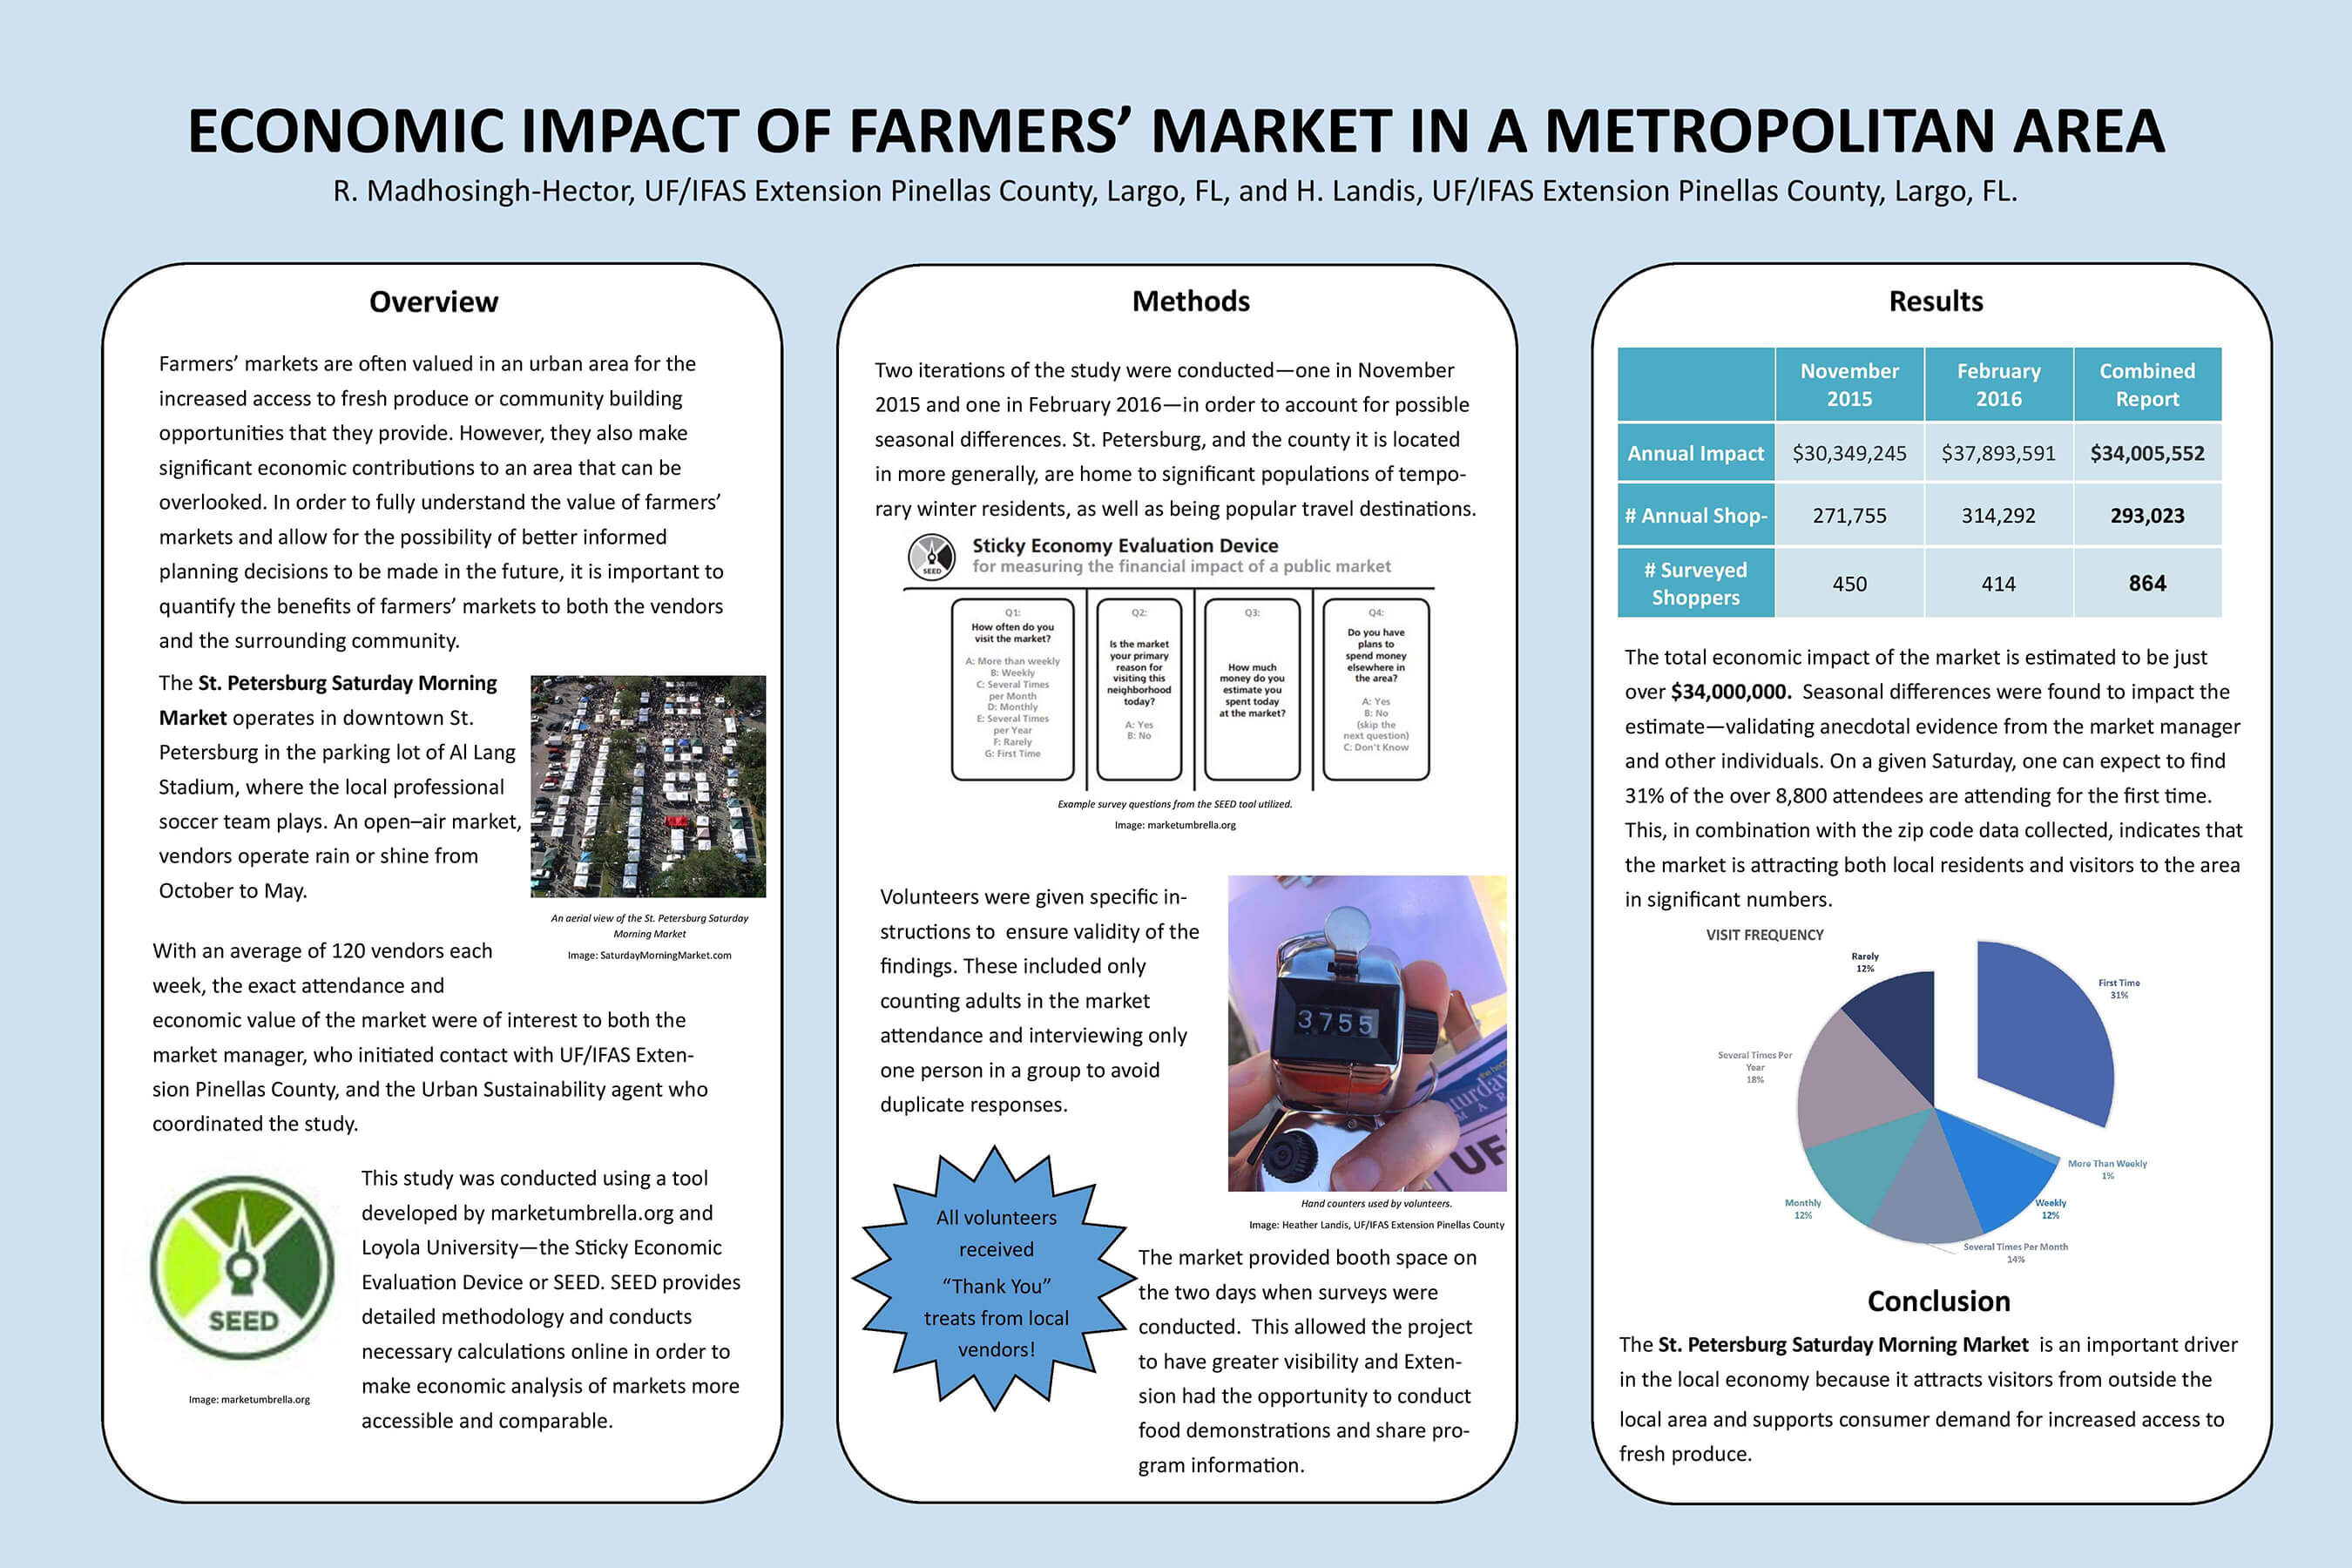 9-Economic-Impact-of-Farmers-Markets-Madhosingh-Hector-compressed-resized